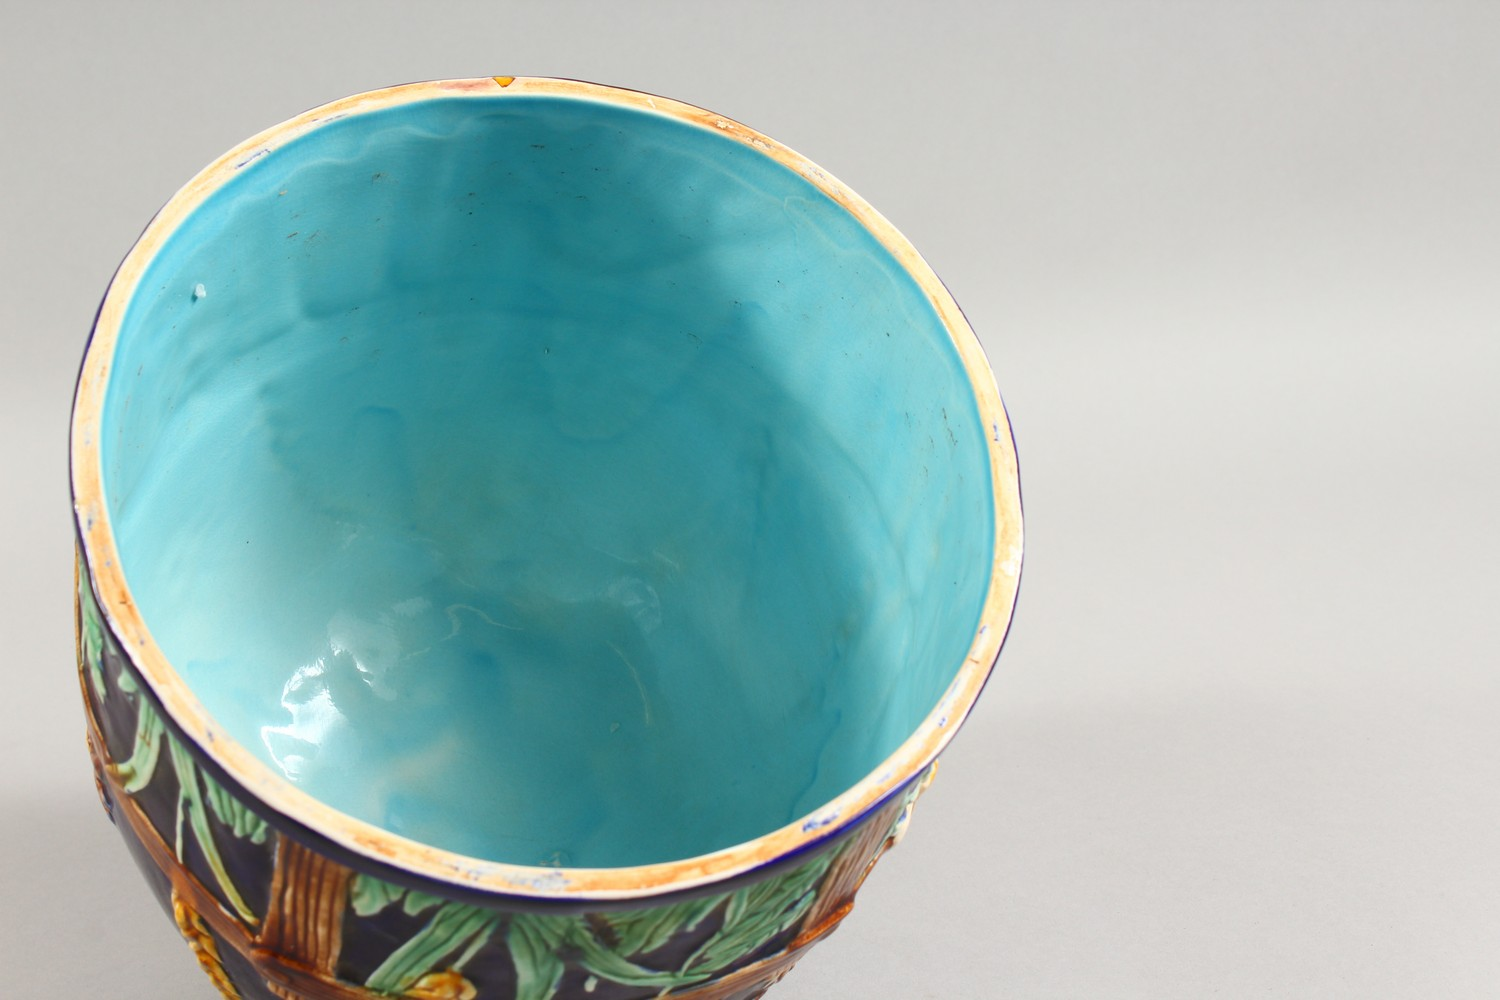 Lot 1139 - A MAJOLICA STYLE CIRCULAR CHEESE DOME.